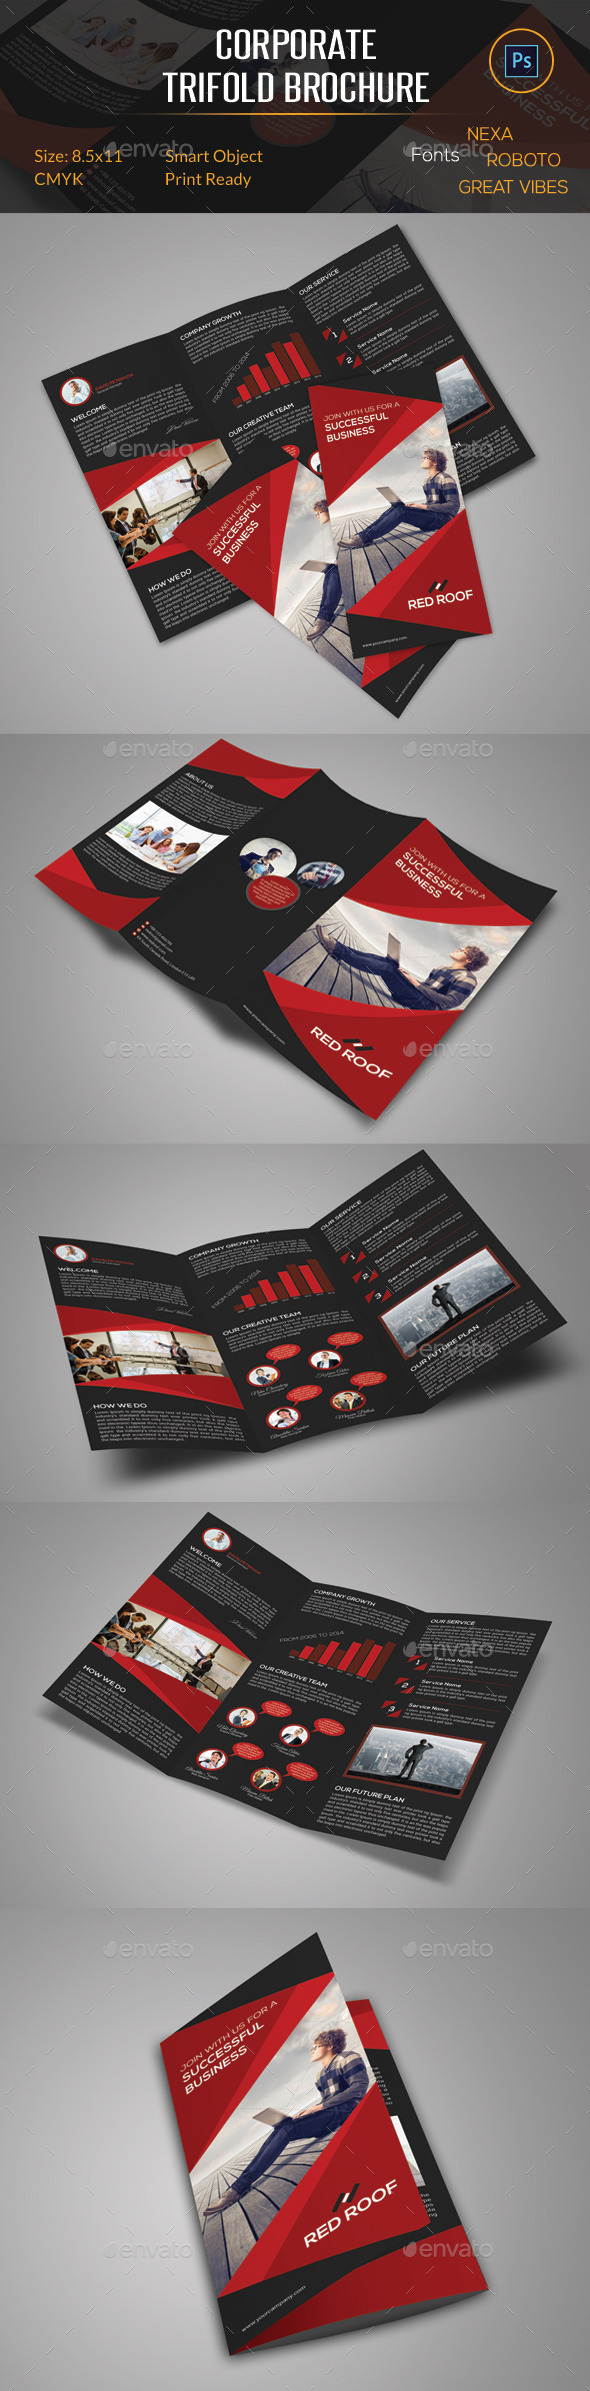 GraphicRiver Corporate Trifold Brochure 10485273